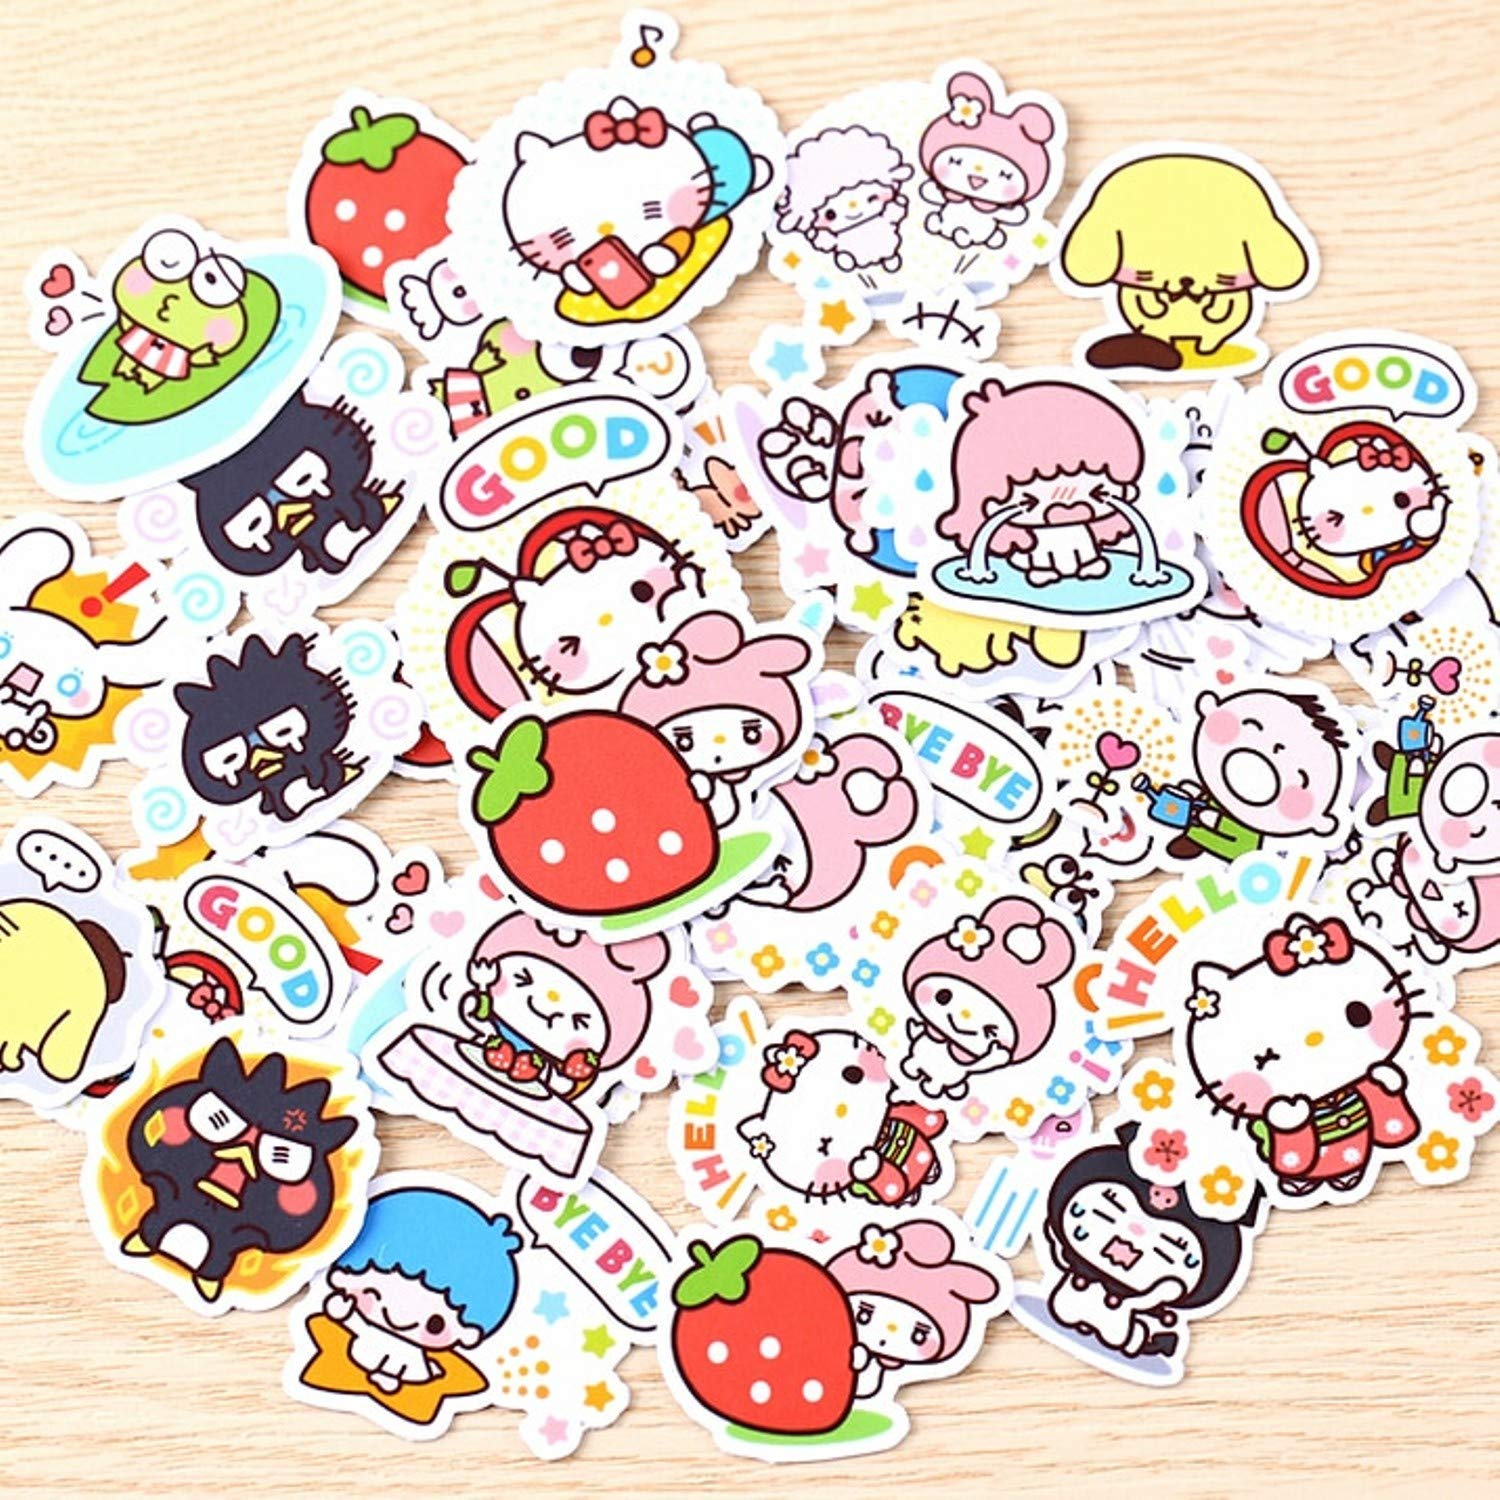 Amazon com 40pcs creative kawaii self made love sanrio girl stickers beautiful stickers decorative sticker diy craft photo albums baby